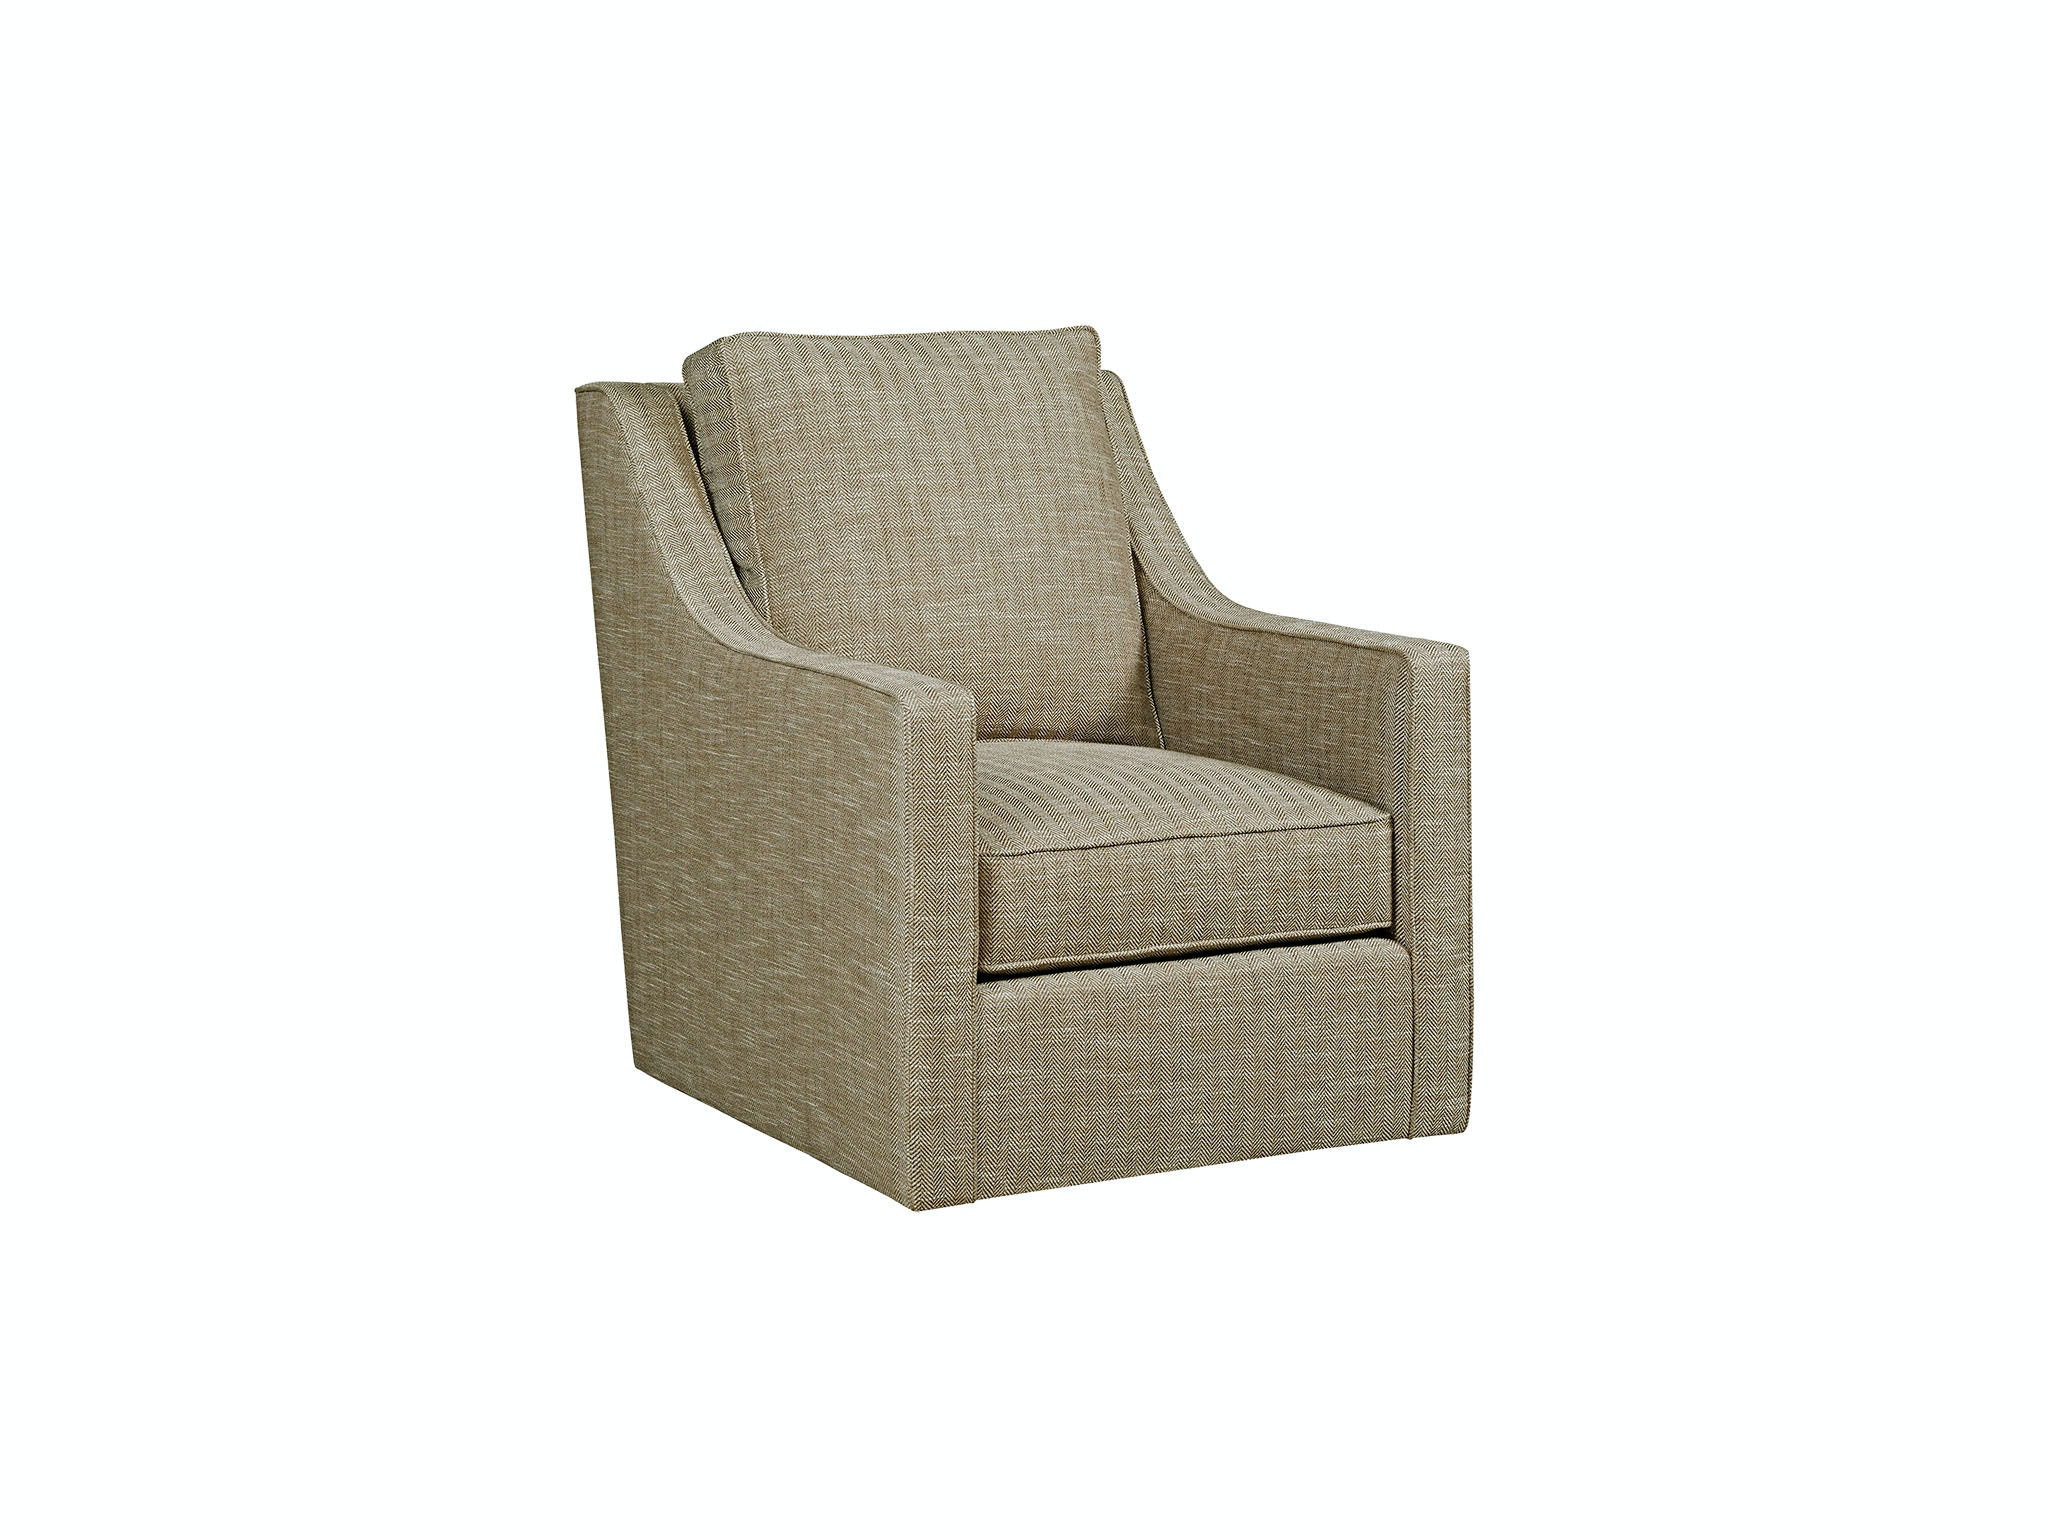 living room swivel glider chairs chair types kincaid furniture bradley 010 02 at bostic sugg